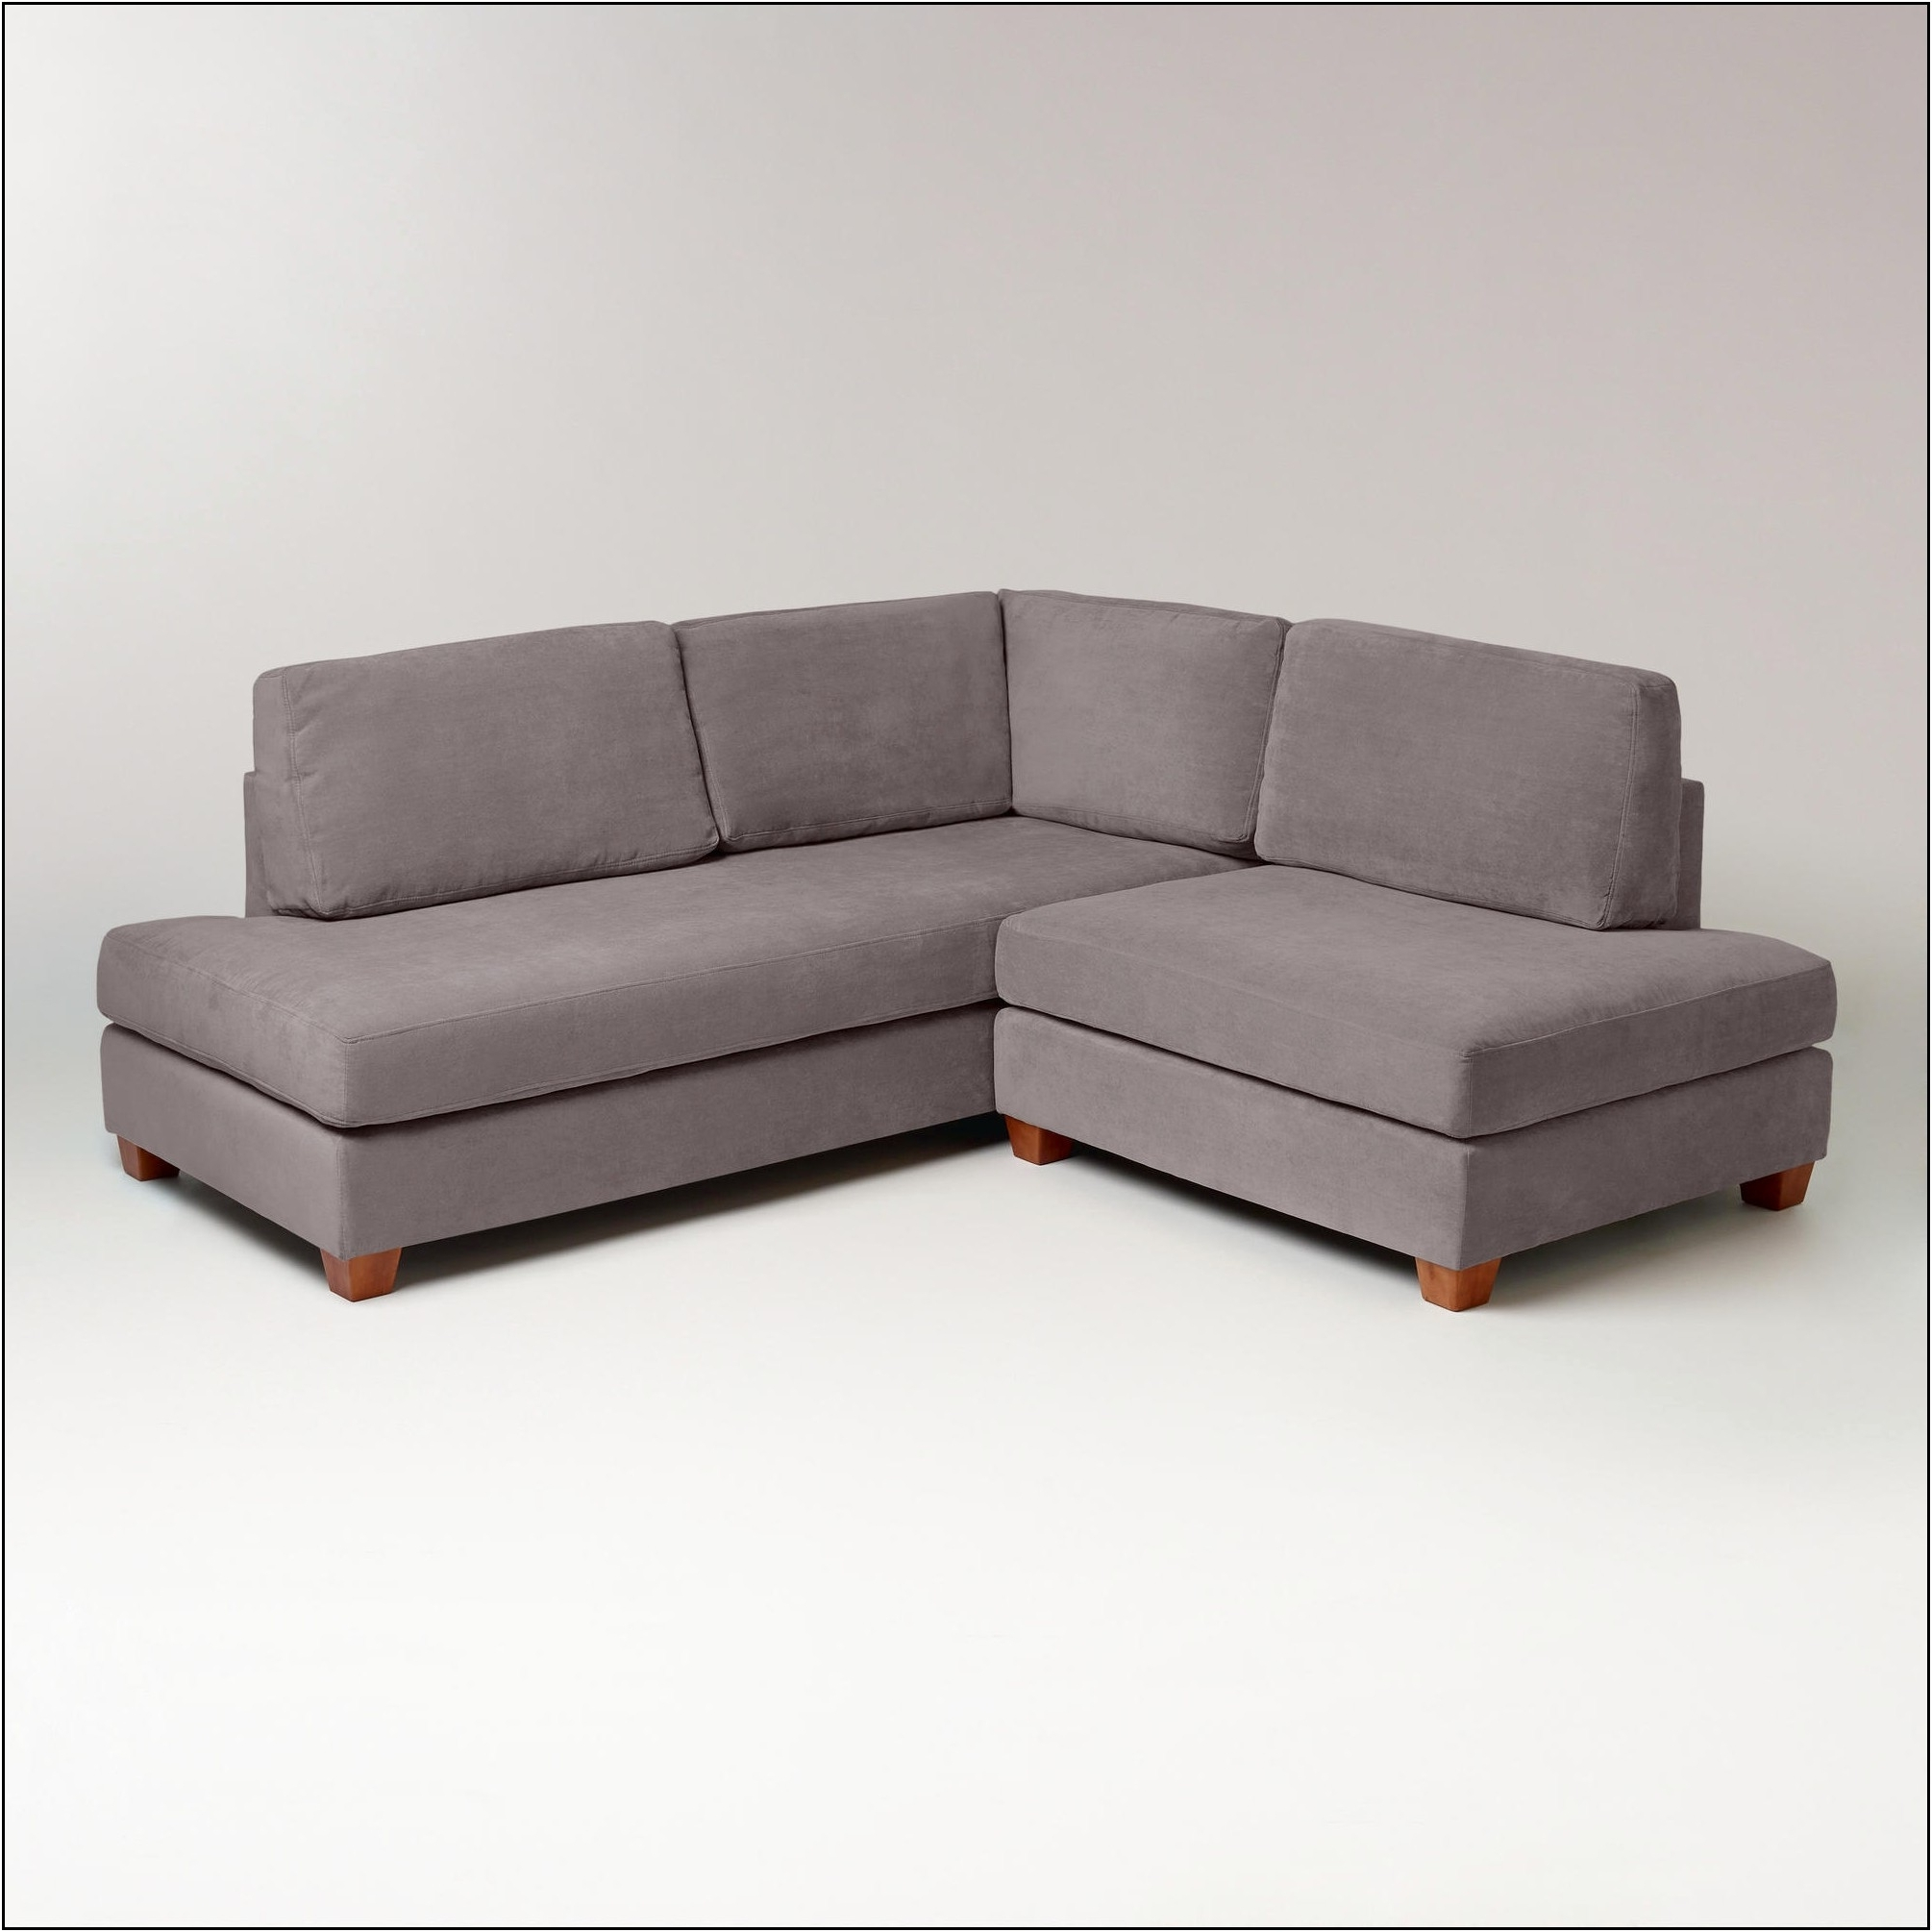 Furniture: High Quality Cotton Material For Couch Slipcovers Ikea Inside Current Target Sectional Sofas (View 15 of 15)